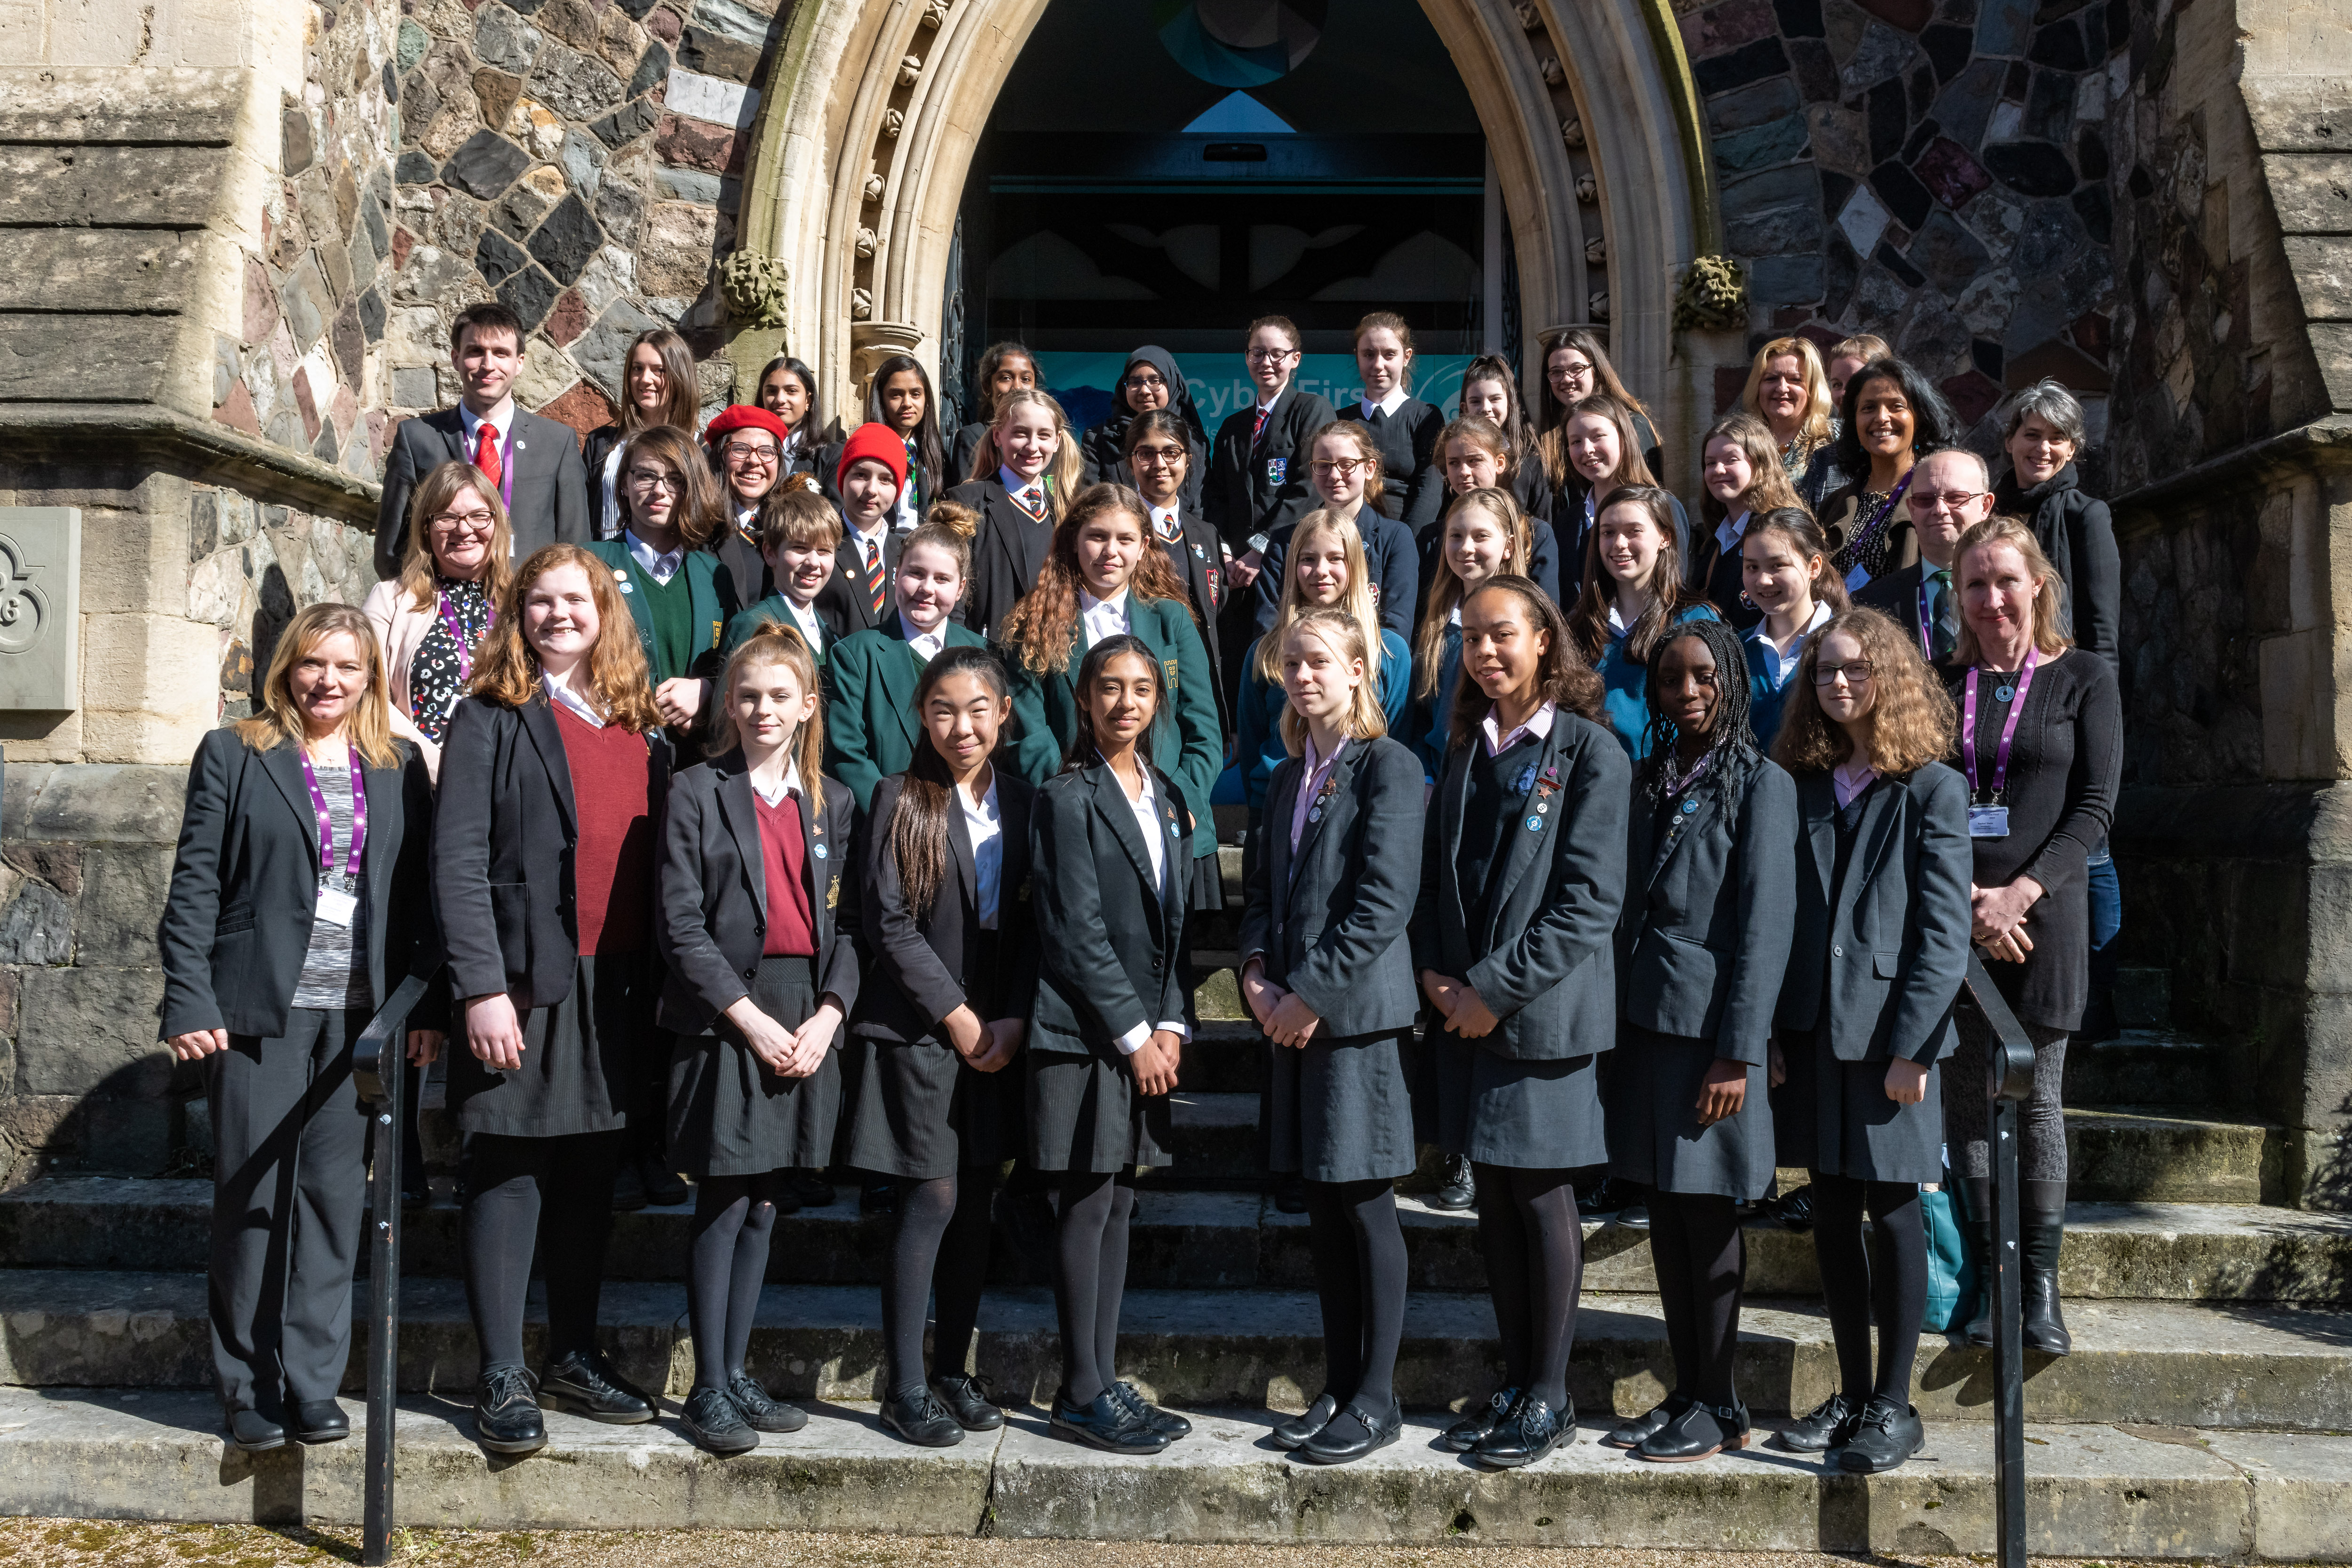 The contenders for the CyberFirst Girls Competition 2020 outside the Grand Final venue in Cardiff.